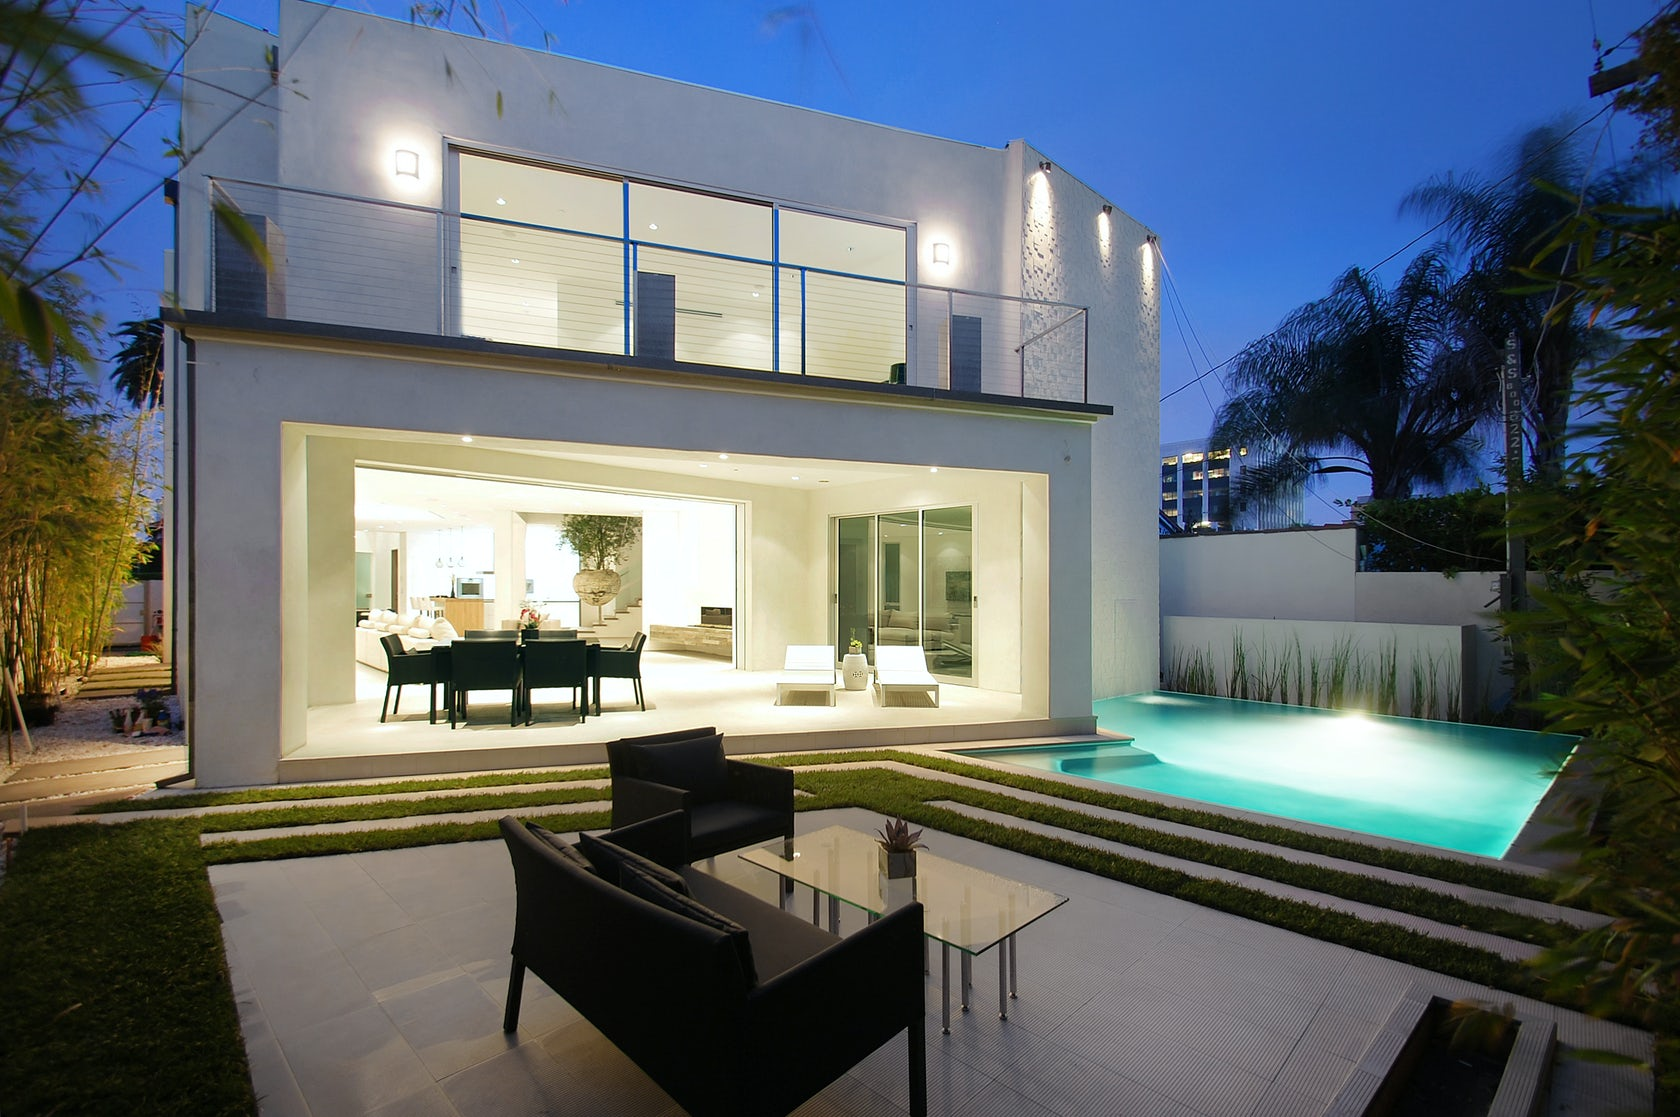 631 s mansfield ave architizer for Casas modernas los angeles